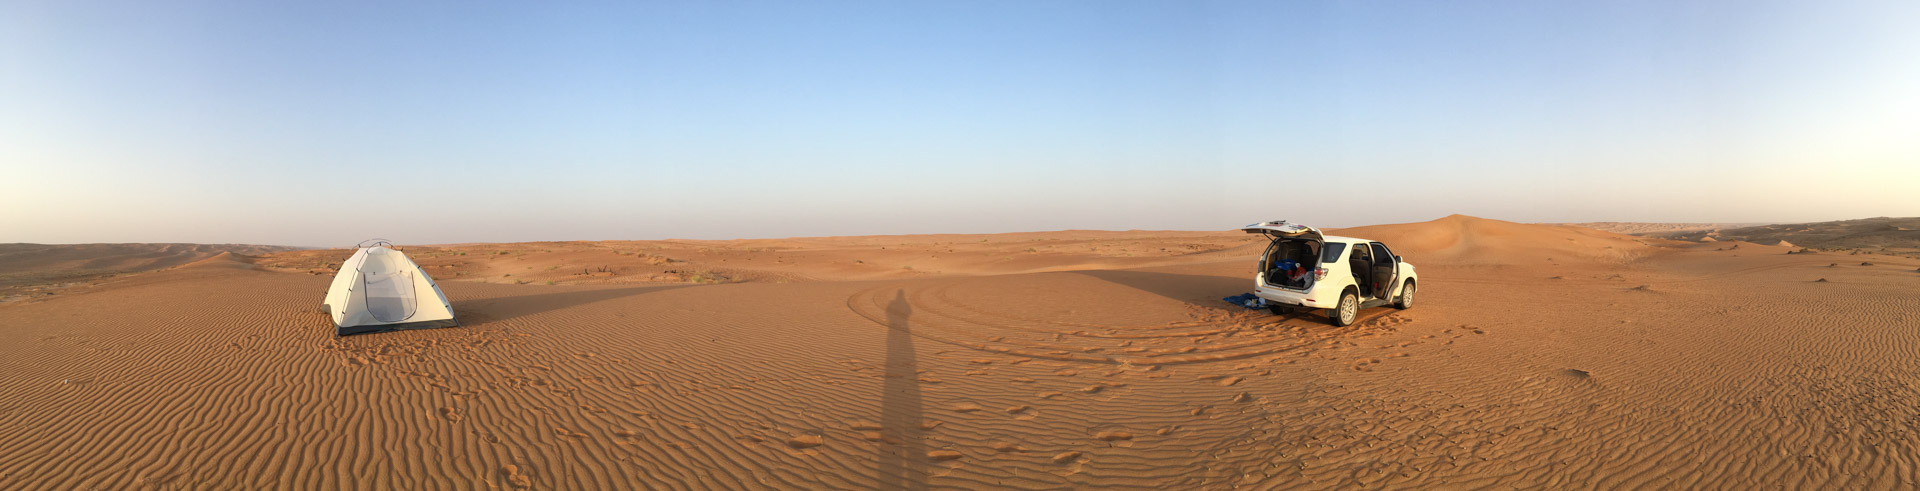 Our Desert Camp - Alone and nobody around - Paradise.